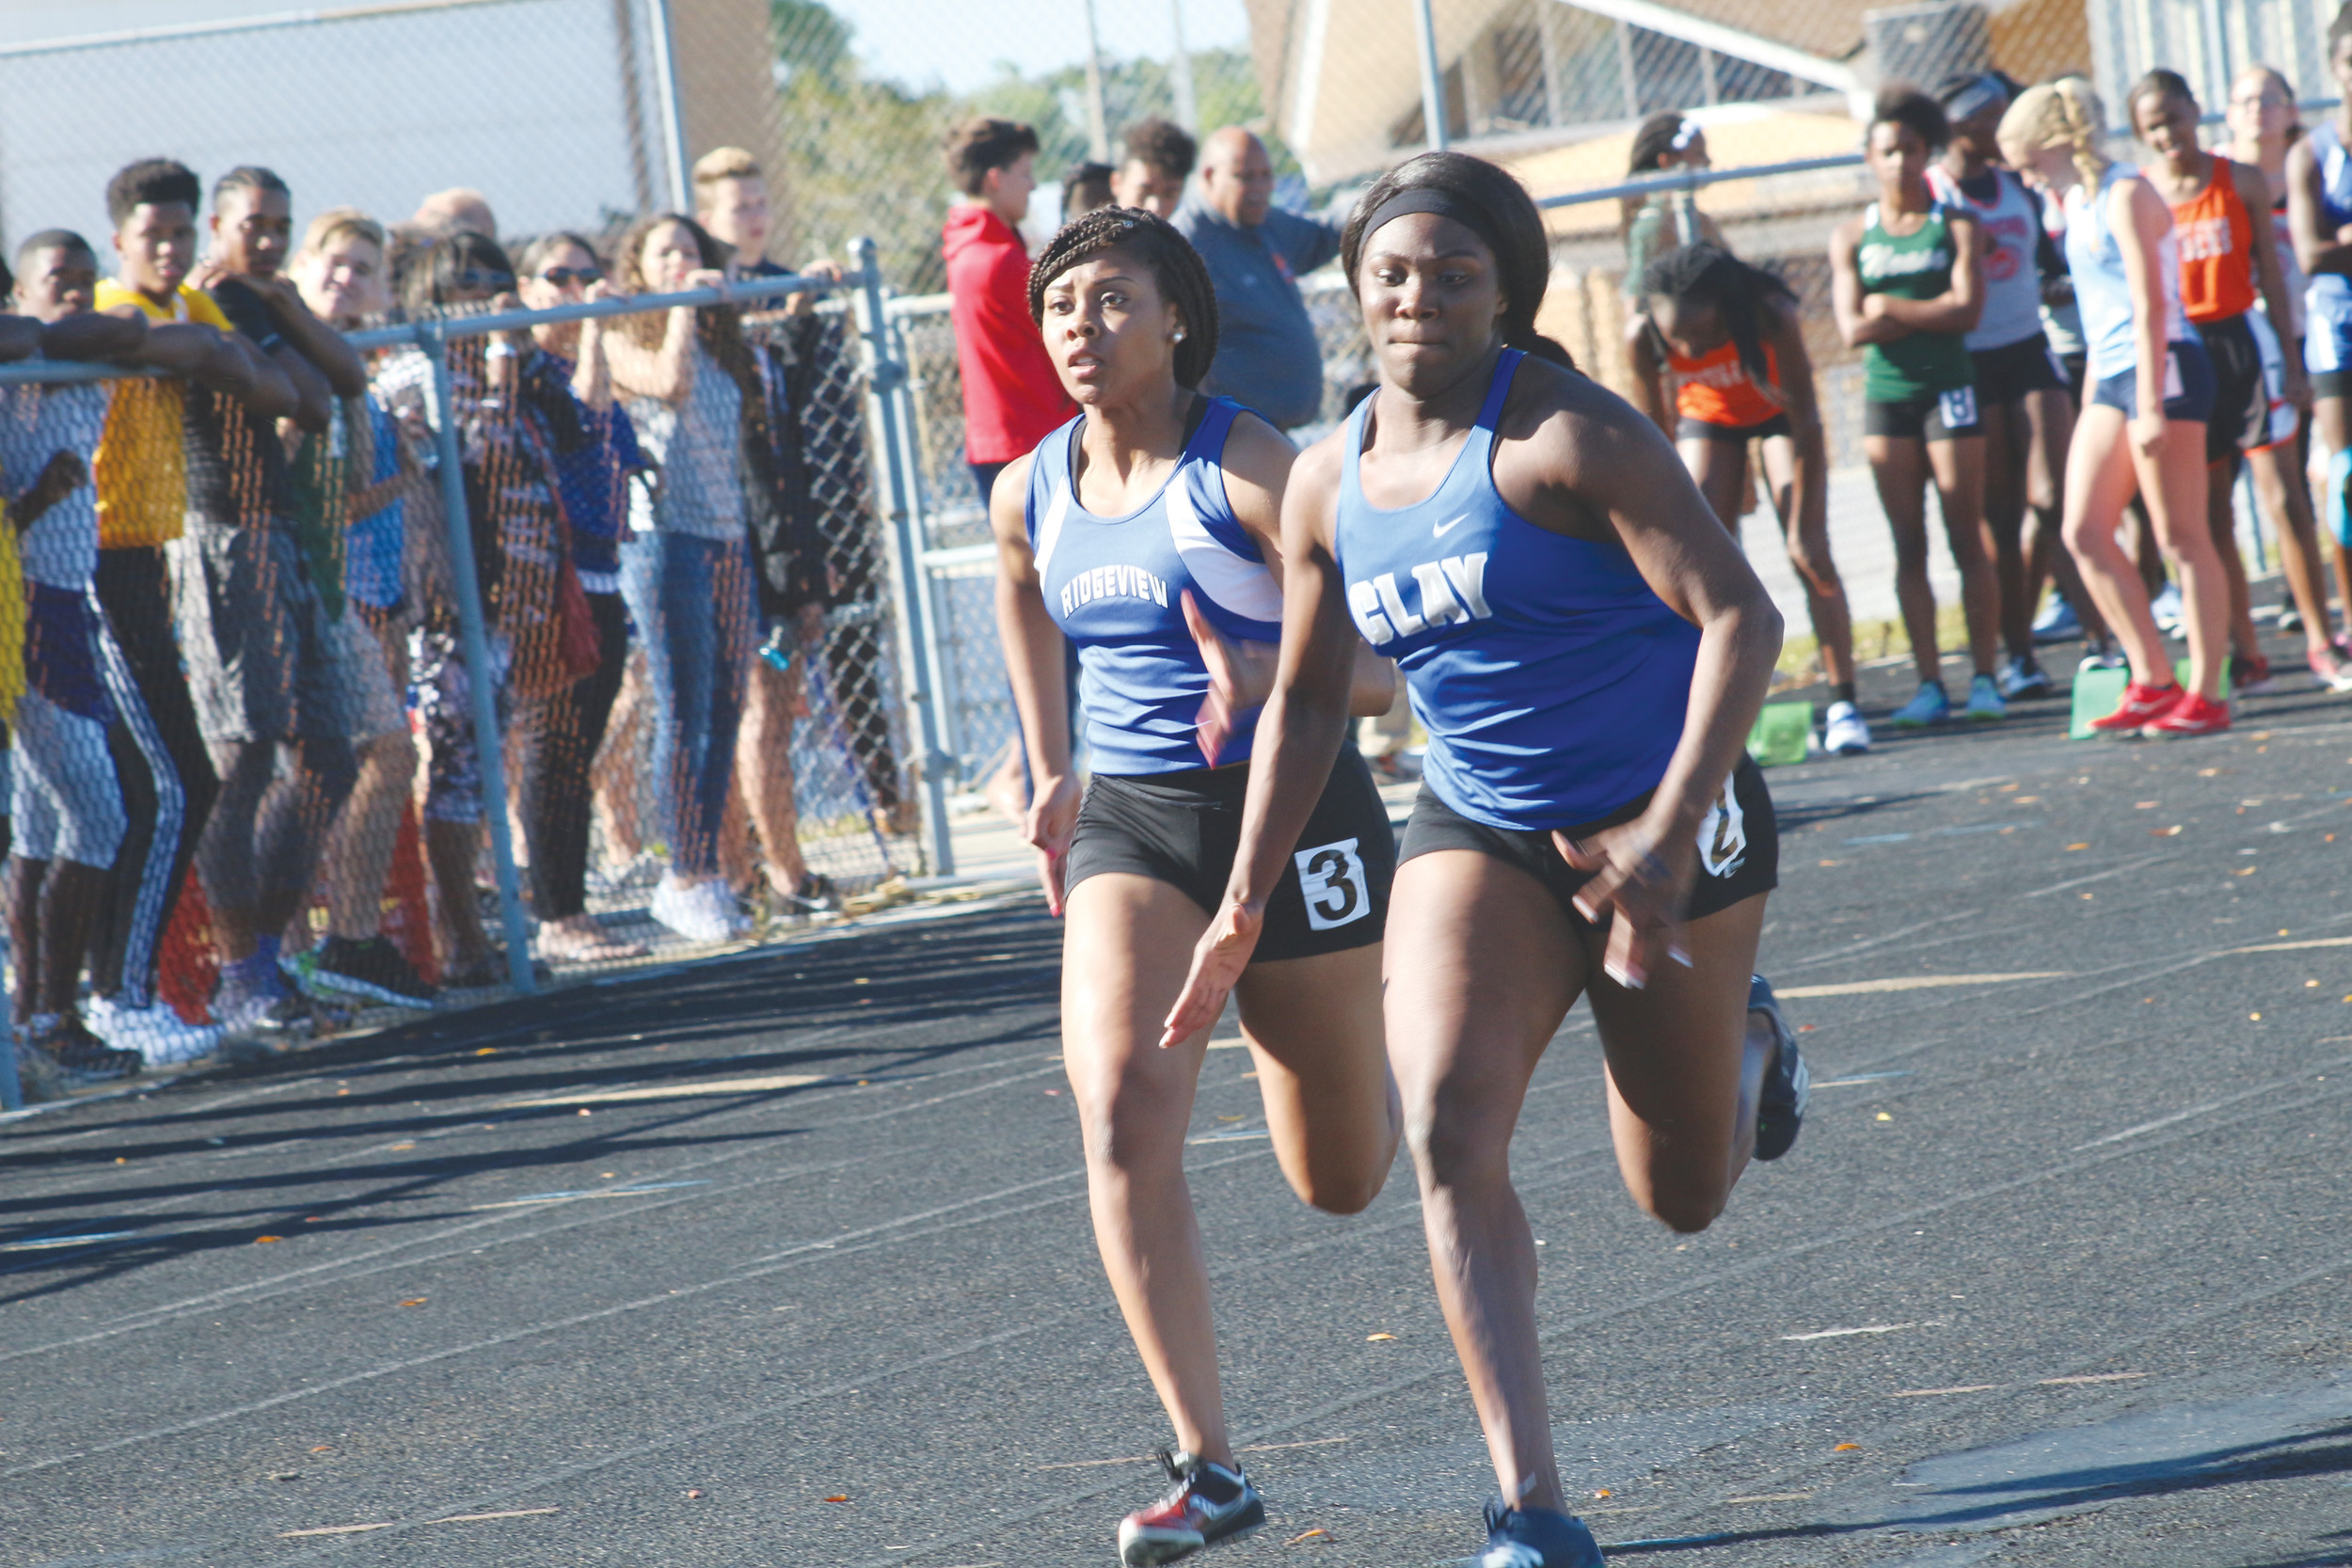 Clay High sprinter Erykah Murray, right, battles with Ridgeview's Chereese McEwan in Don Hall 100 meters. Murray finished in top four for district 3-2A 100 and 200 meter dashes to advance to the region 1-2A championships to be held April 25 at Bolles.